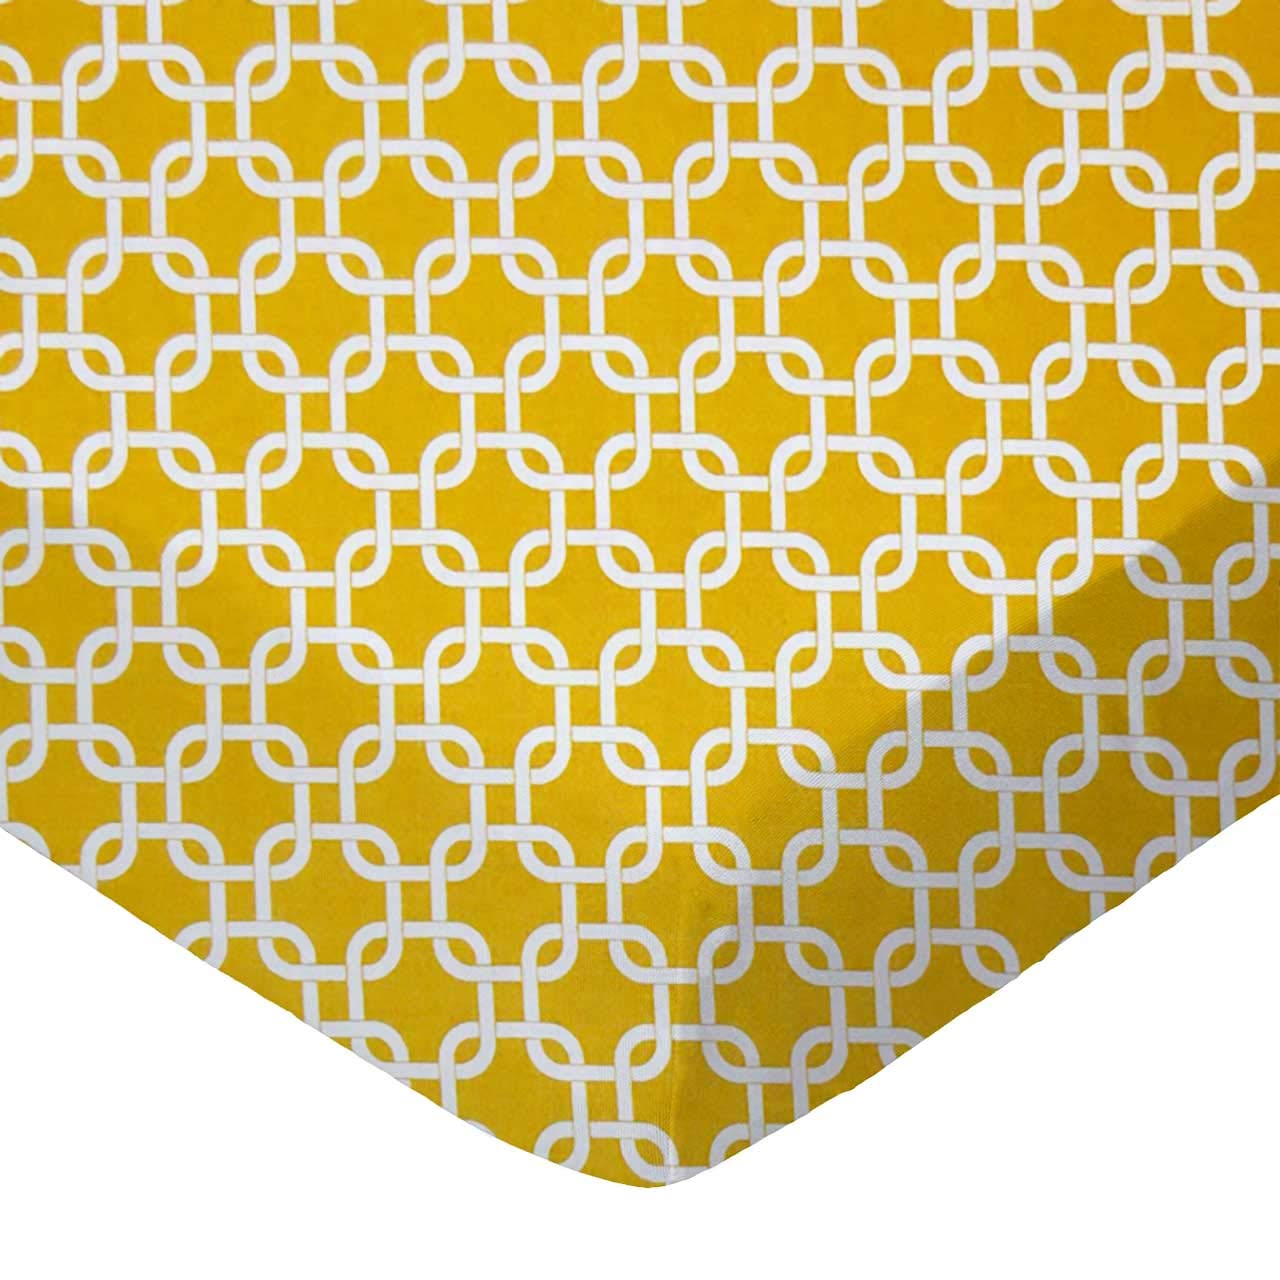 SheetWorld Fitted Crib / Toddler Sheet - Mustard Yellow Links - Made In USA by SHEETWORLD.COM